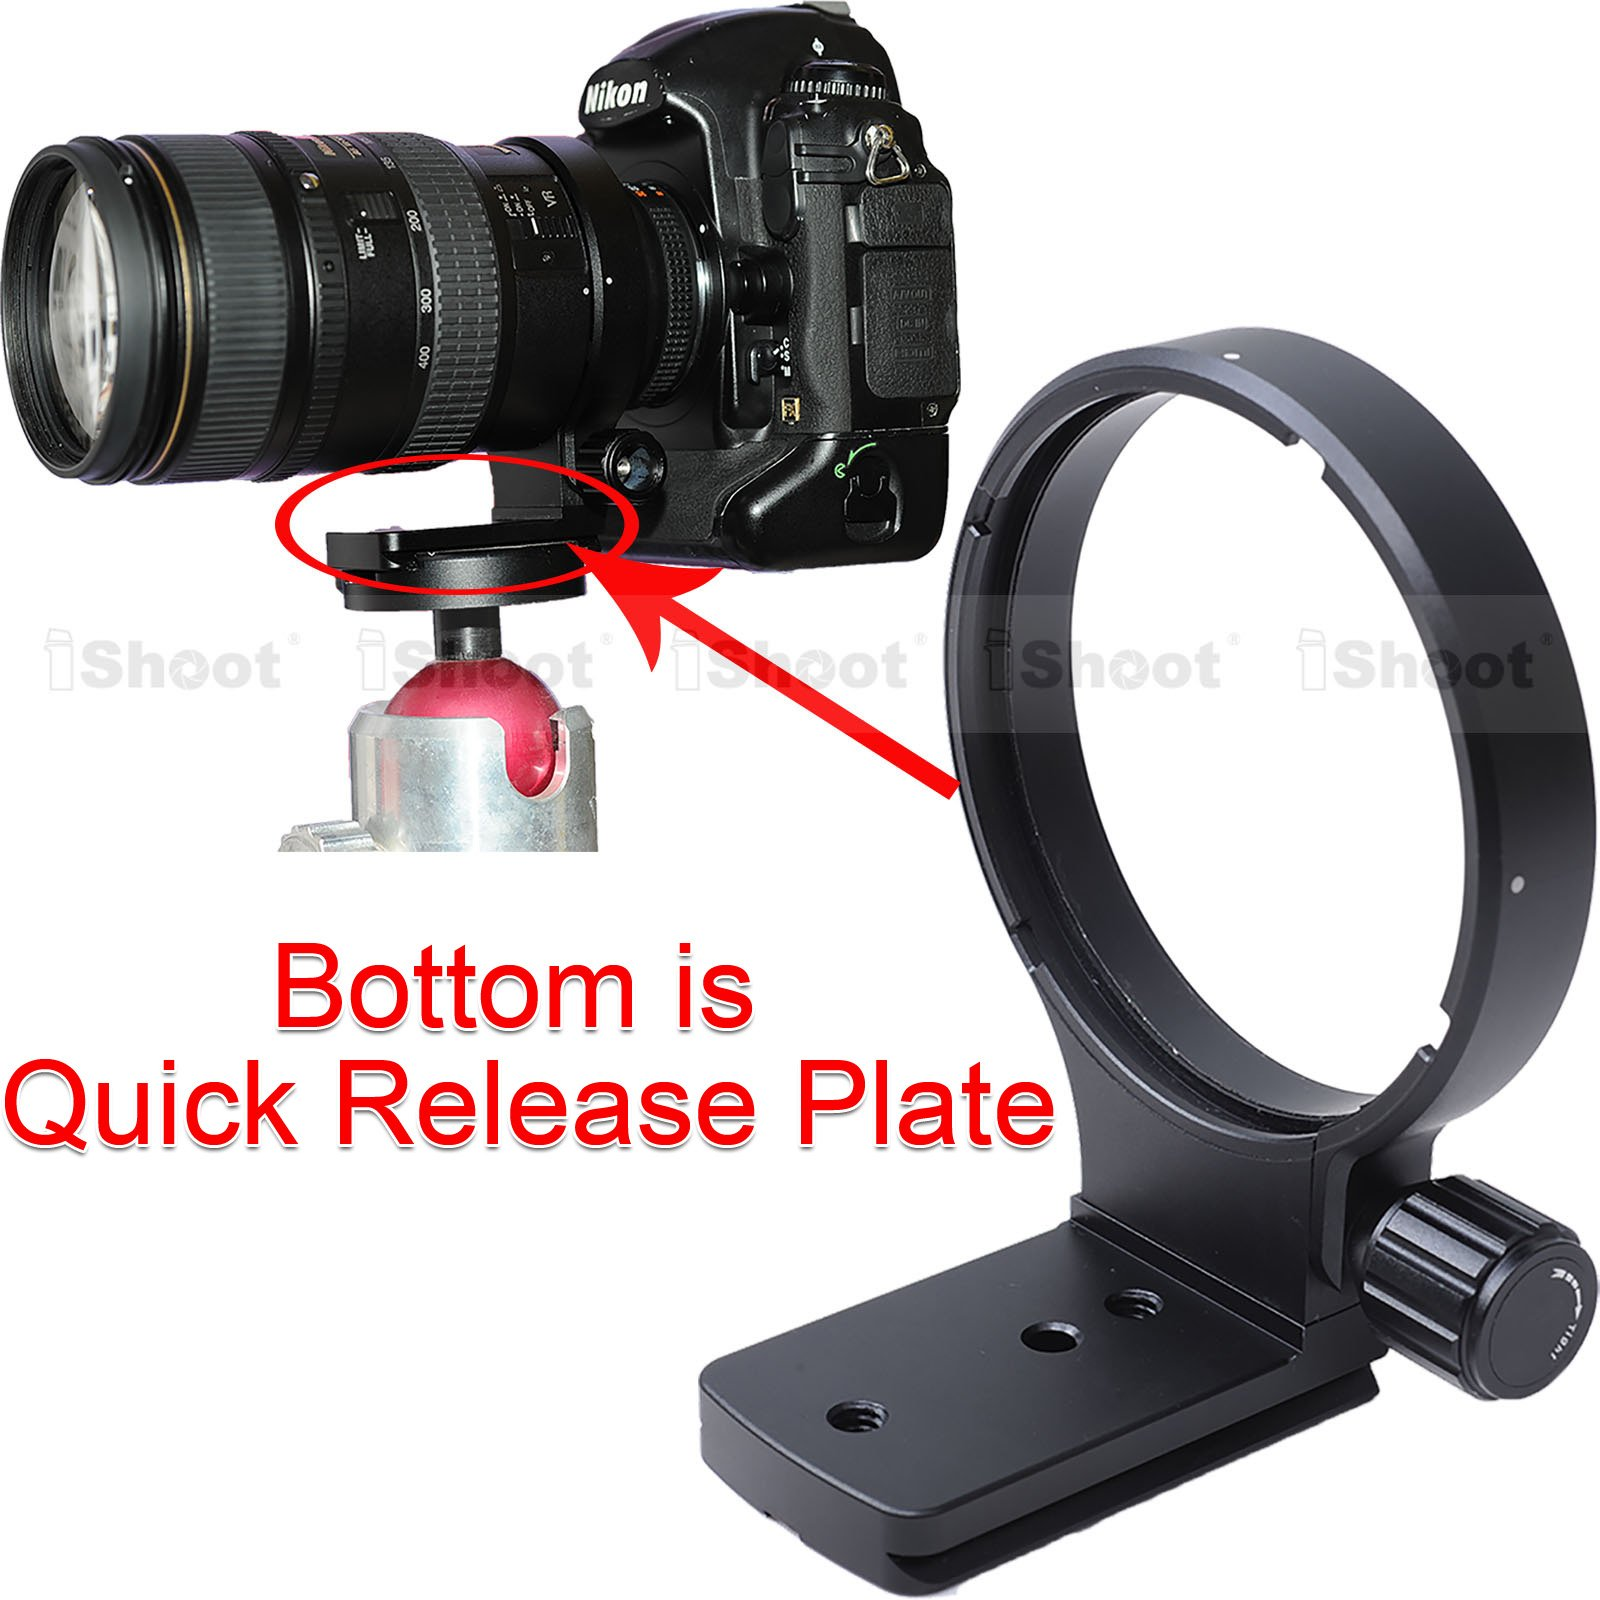 iShoot Lens Support Collar Tripod Mount Ring for Nikon AF 80-400mm f/4.5-5.6D ED VR and Nikon AF-S 300mm f/4D IF-ED -Bottom is Camera Quick Replease Plate Feature by iShoot